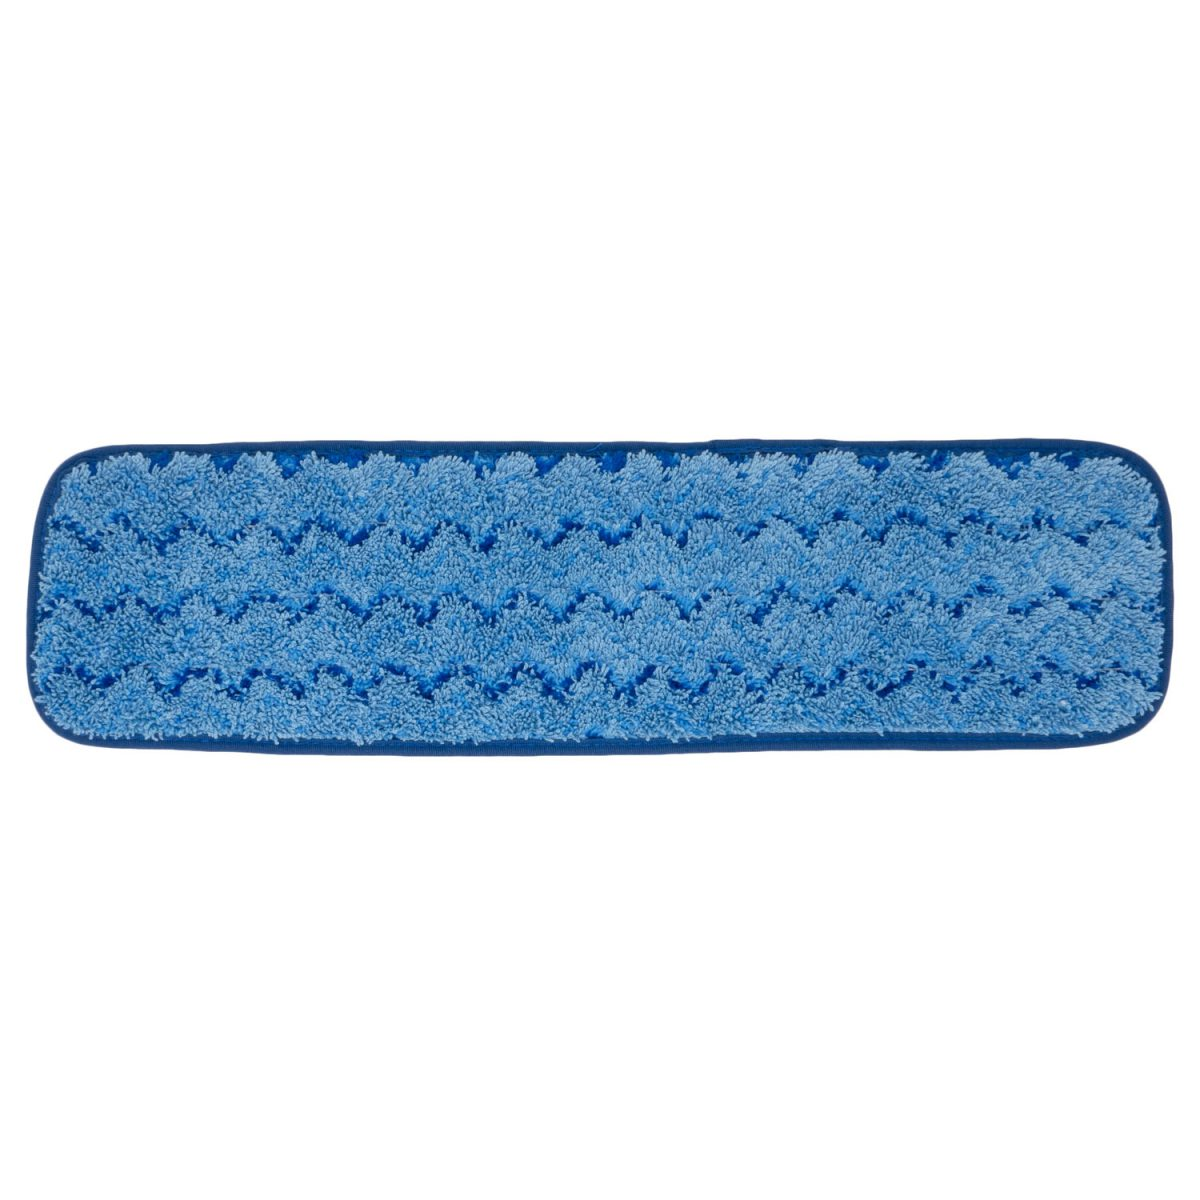 Microfiber Wet Mop with Scrubbers